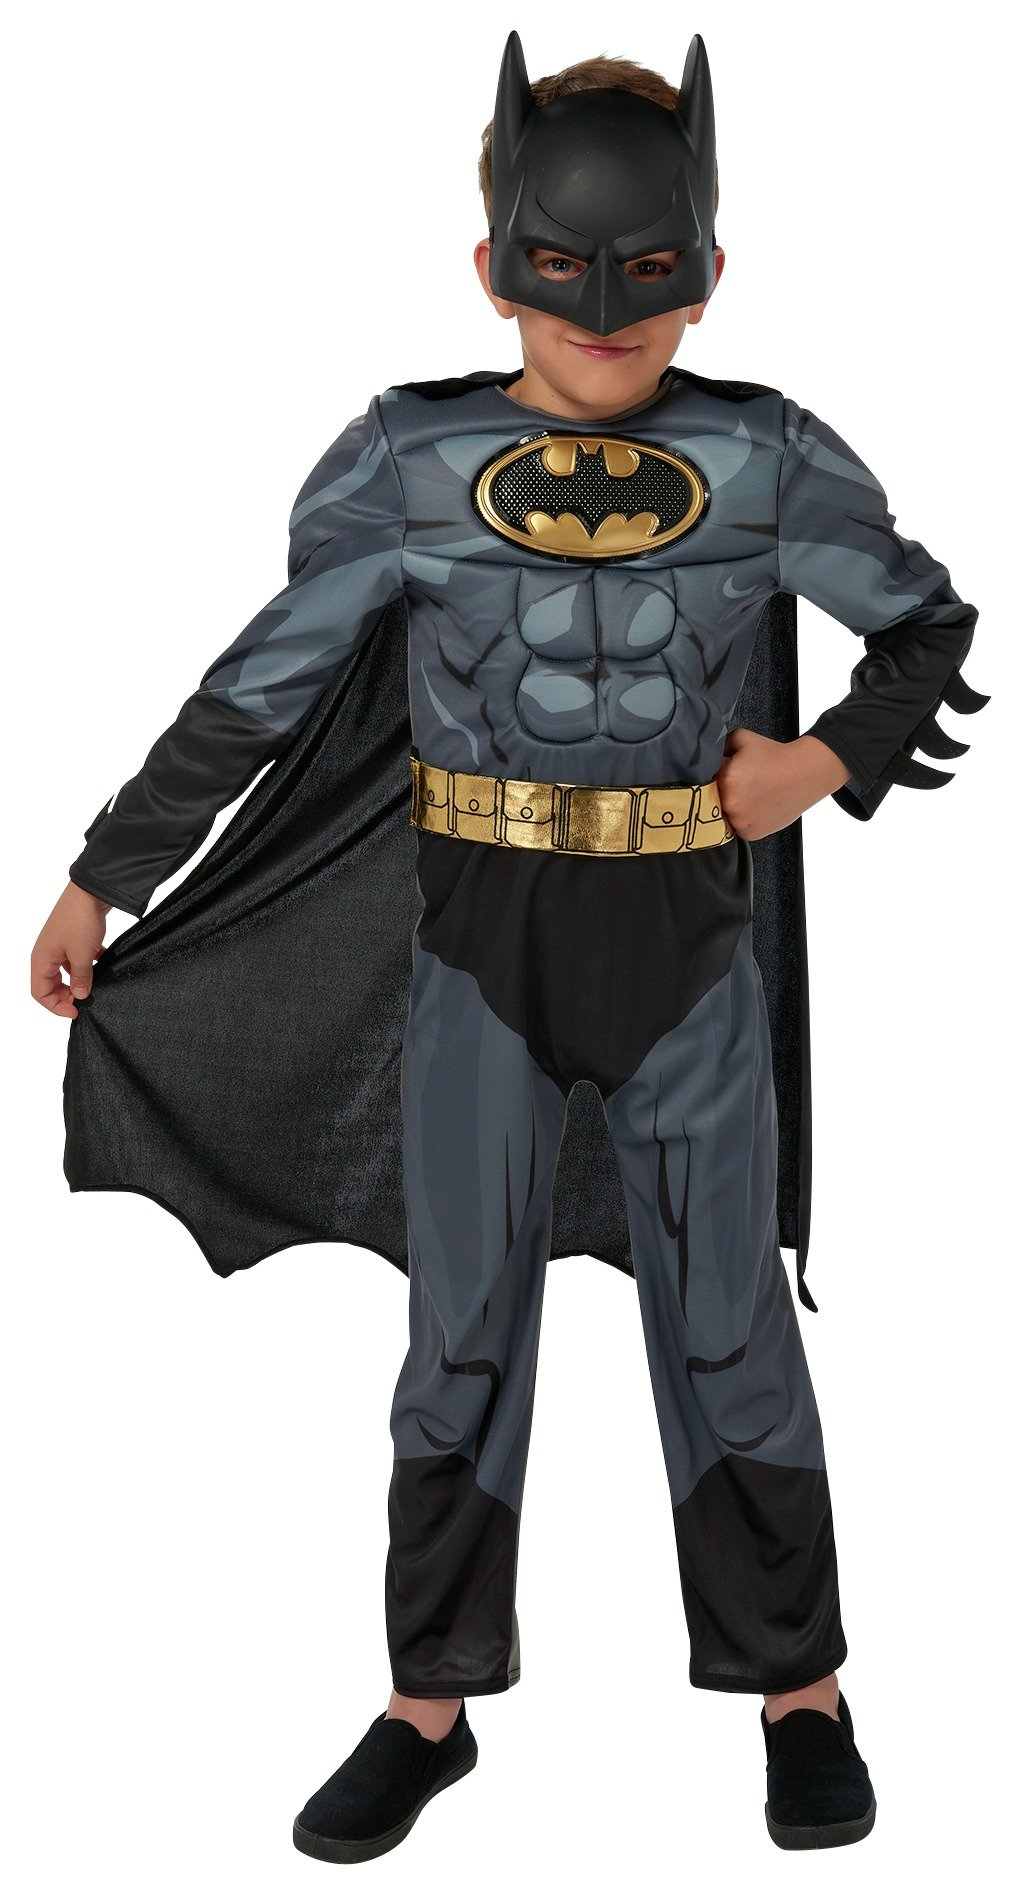 DC Batman Fancy Dress Costume - 5-6 Years